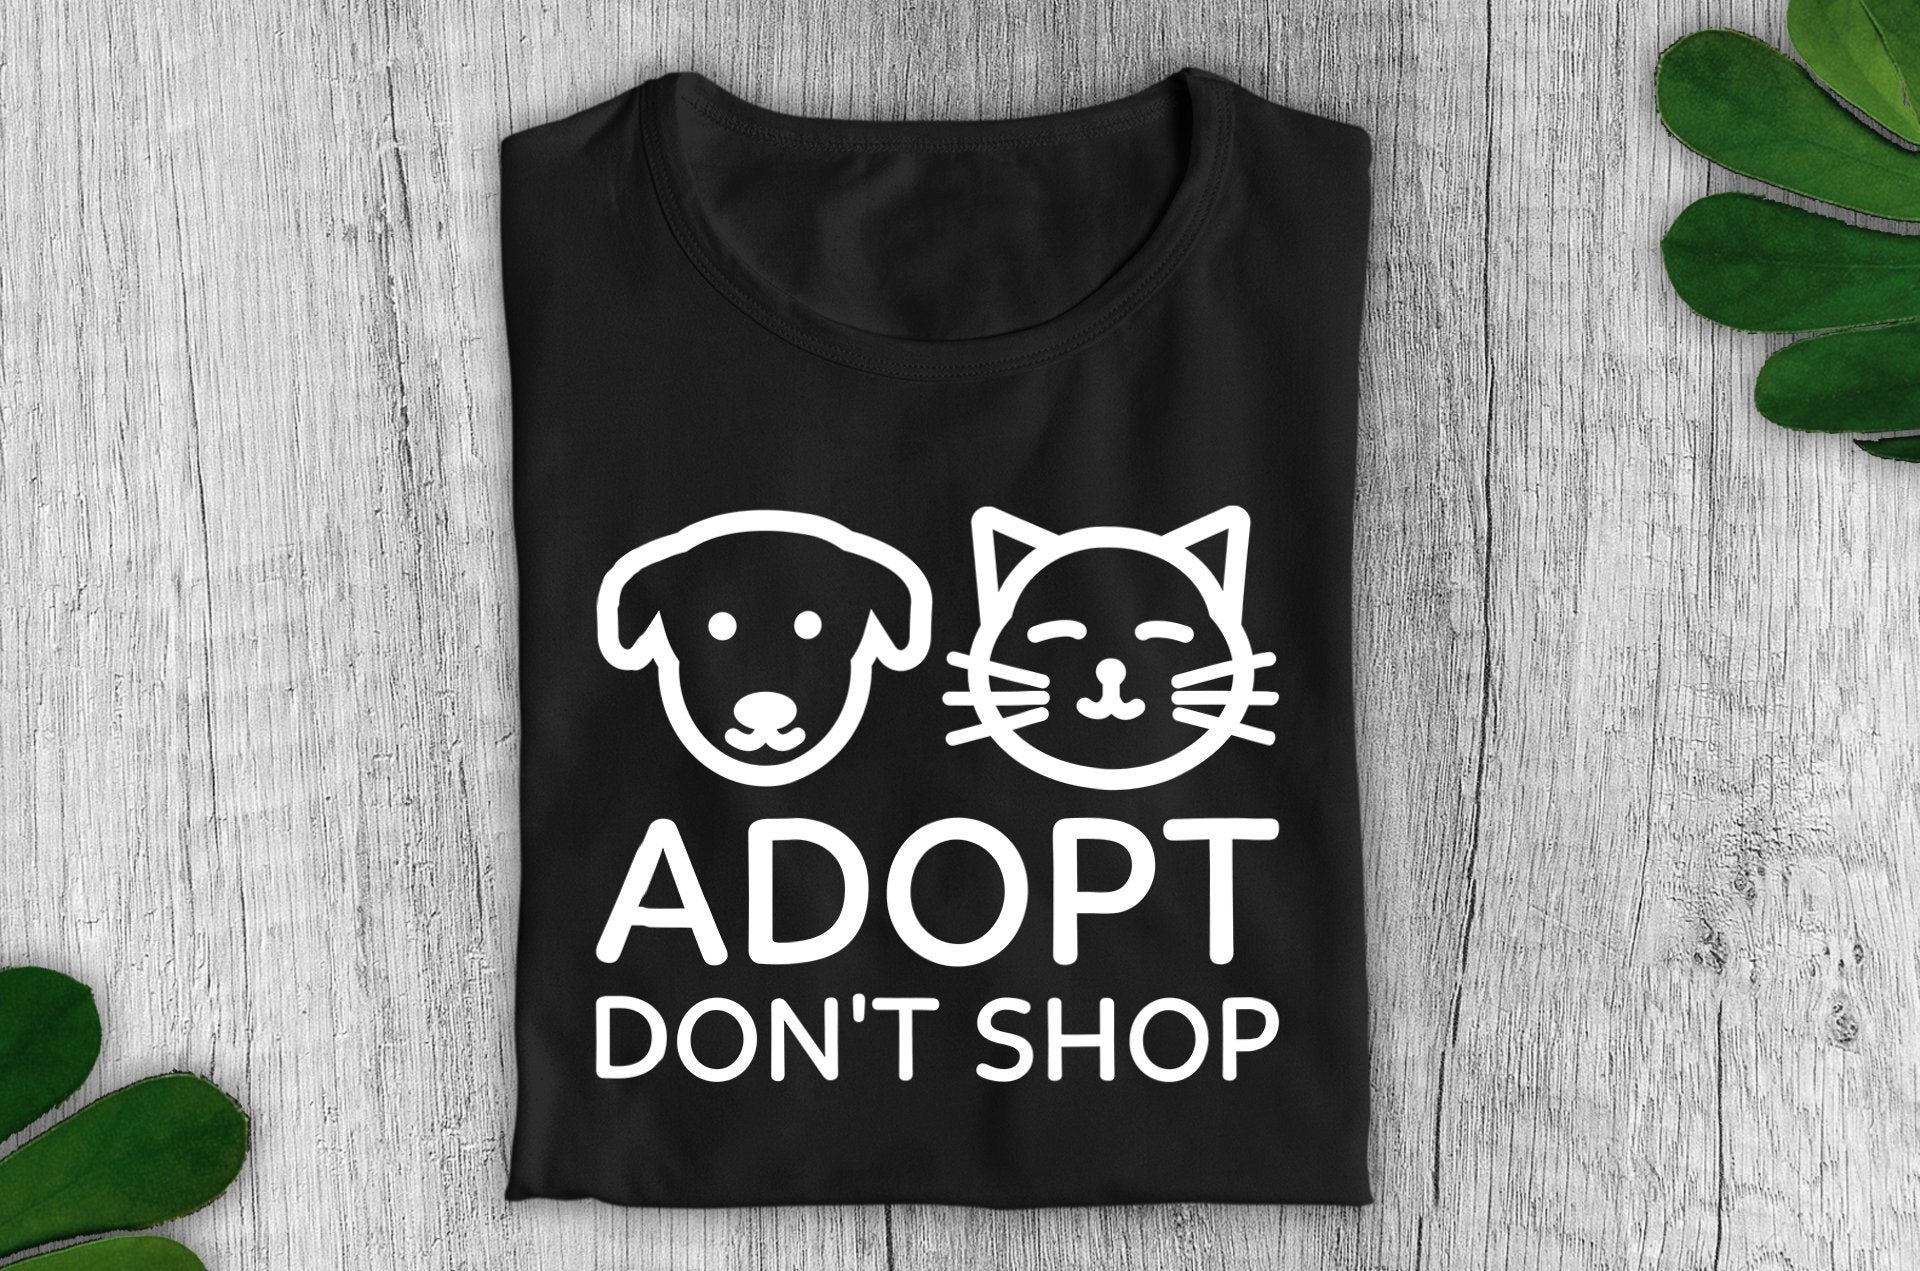 """Adopt, Don't Shop"" Vegan T-Shirt - 100% Organic Cotton (Unisex) Clothing Vegan Original"